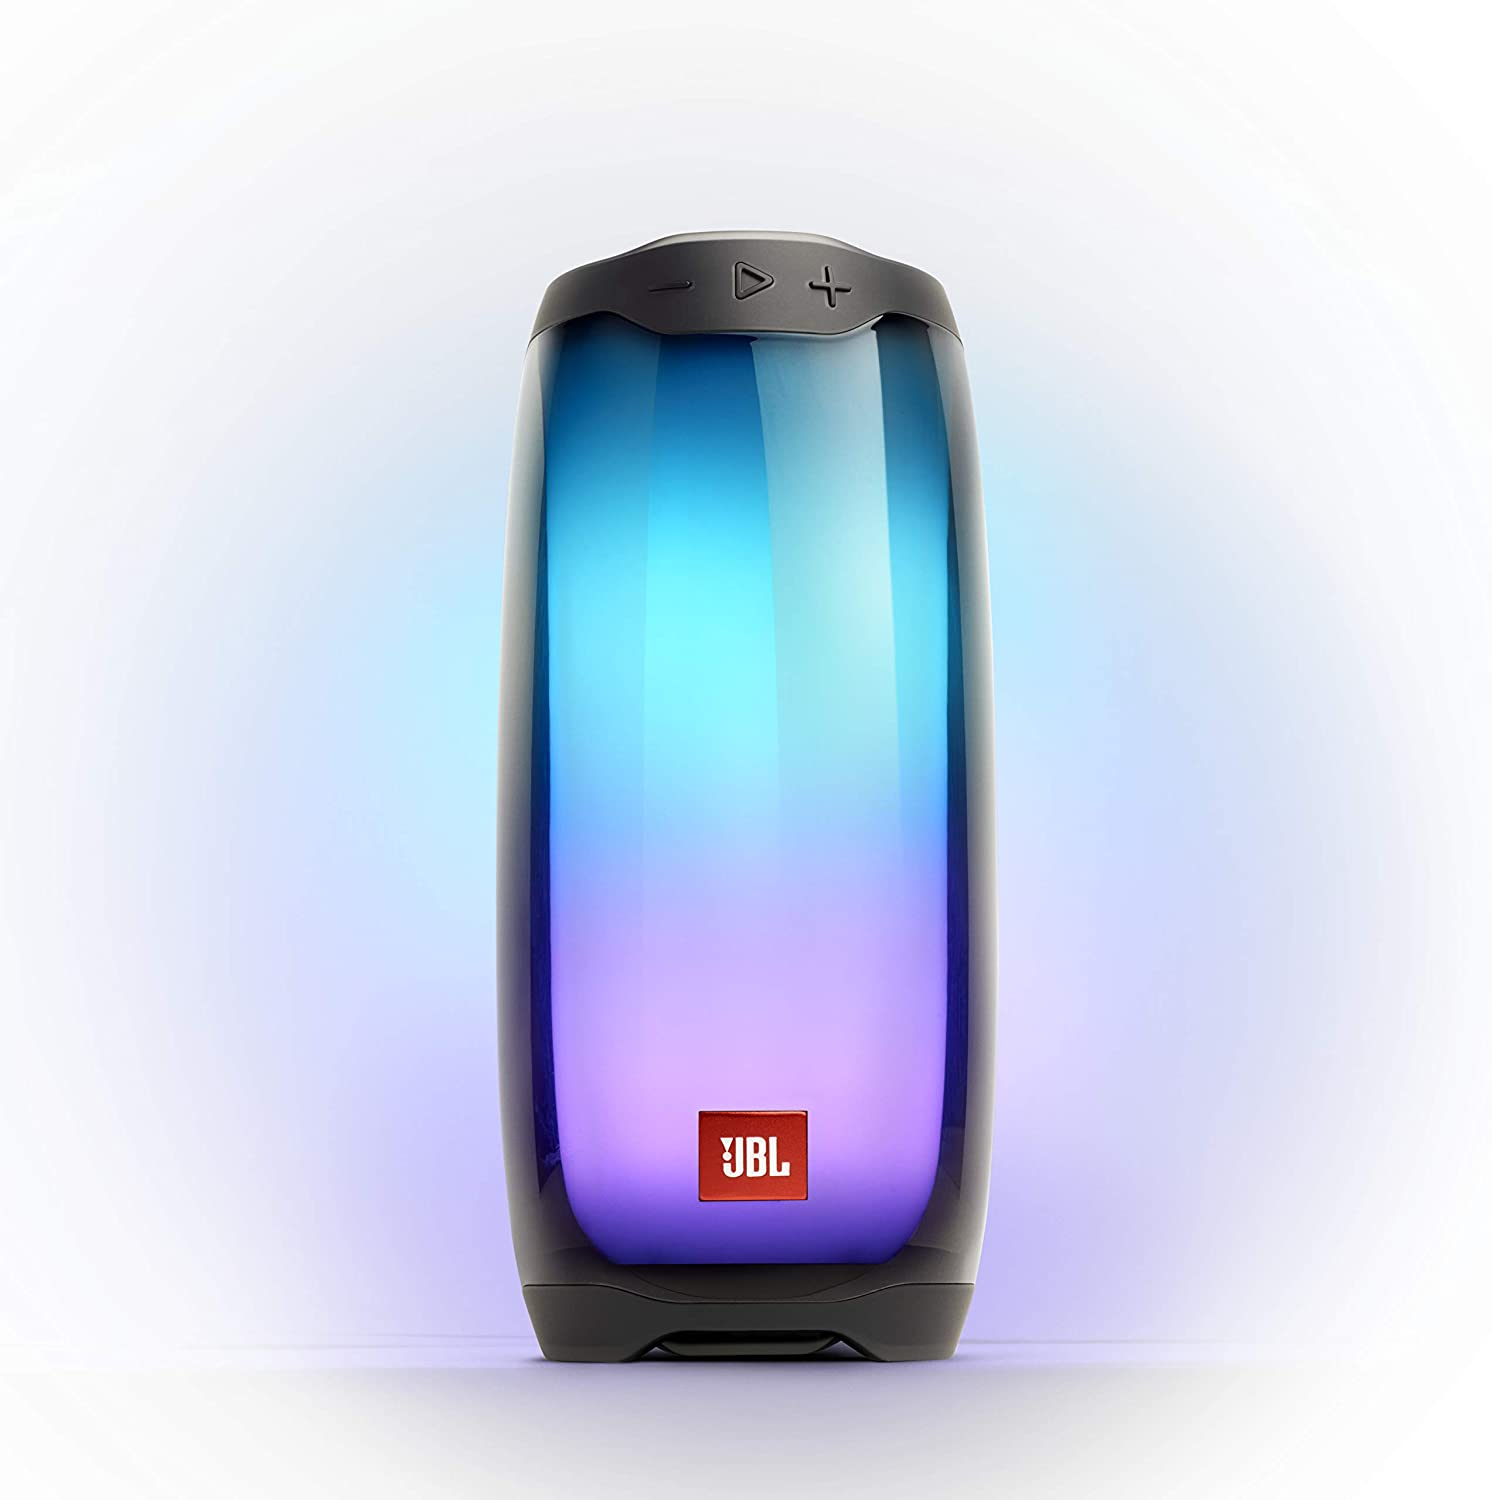 JBL Pulse 10 - Waterproof Portable Bluetooth Speaker with Light Show - Black